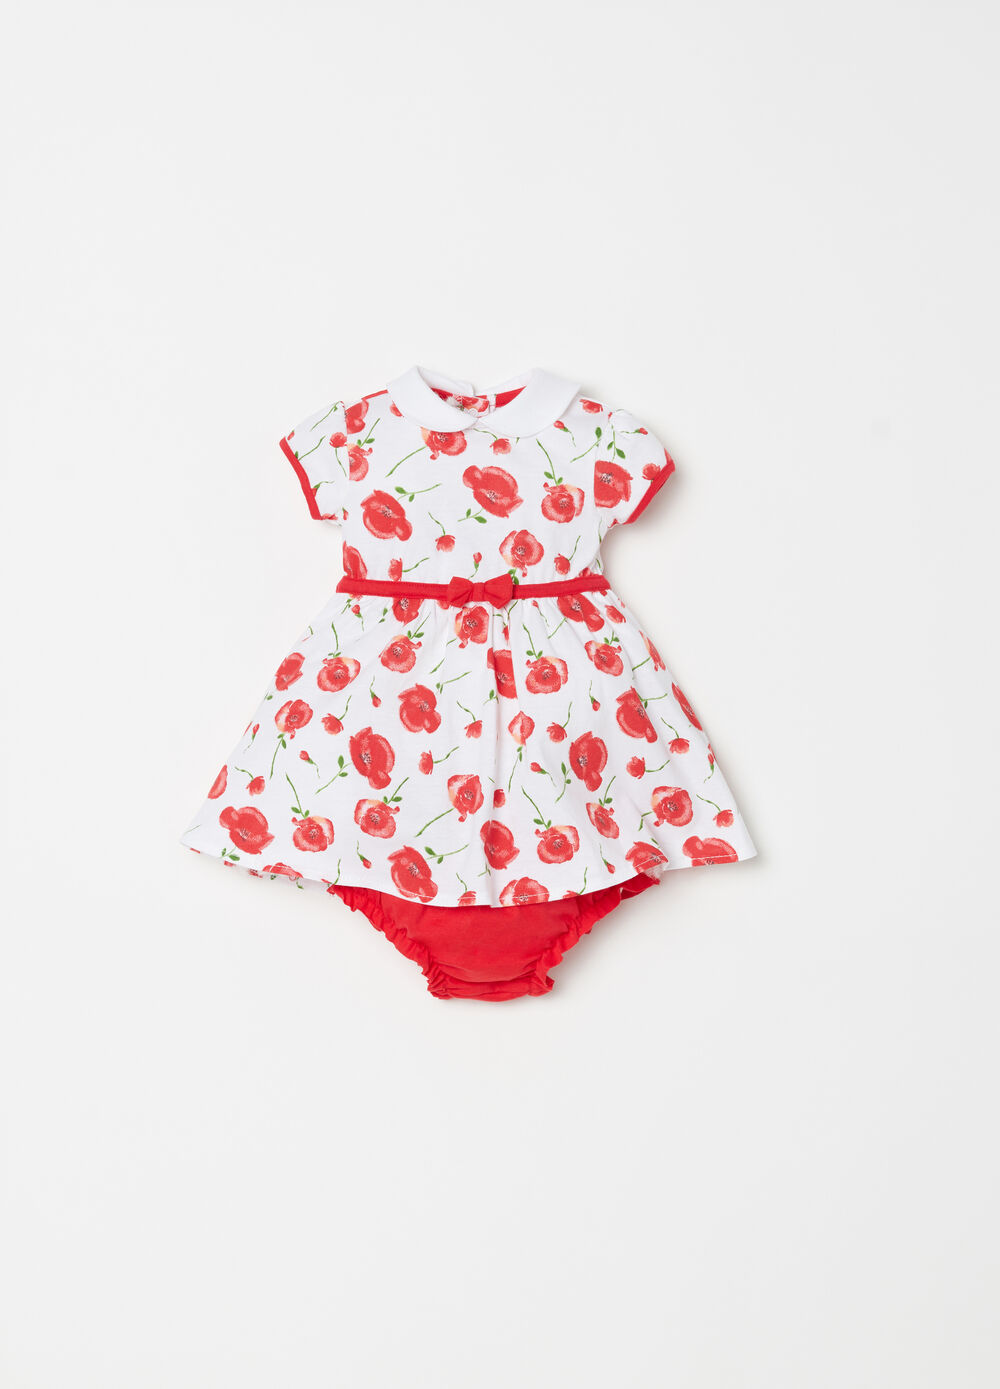 Dress set with floral collar and briefs